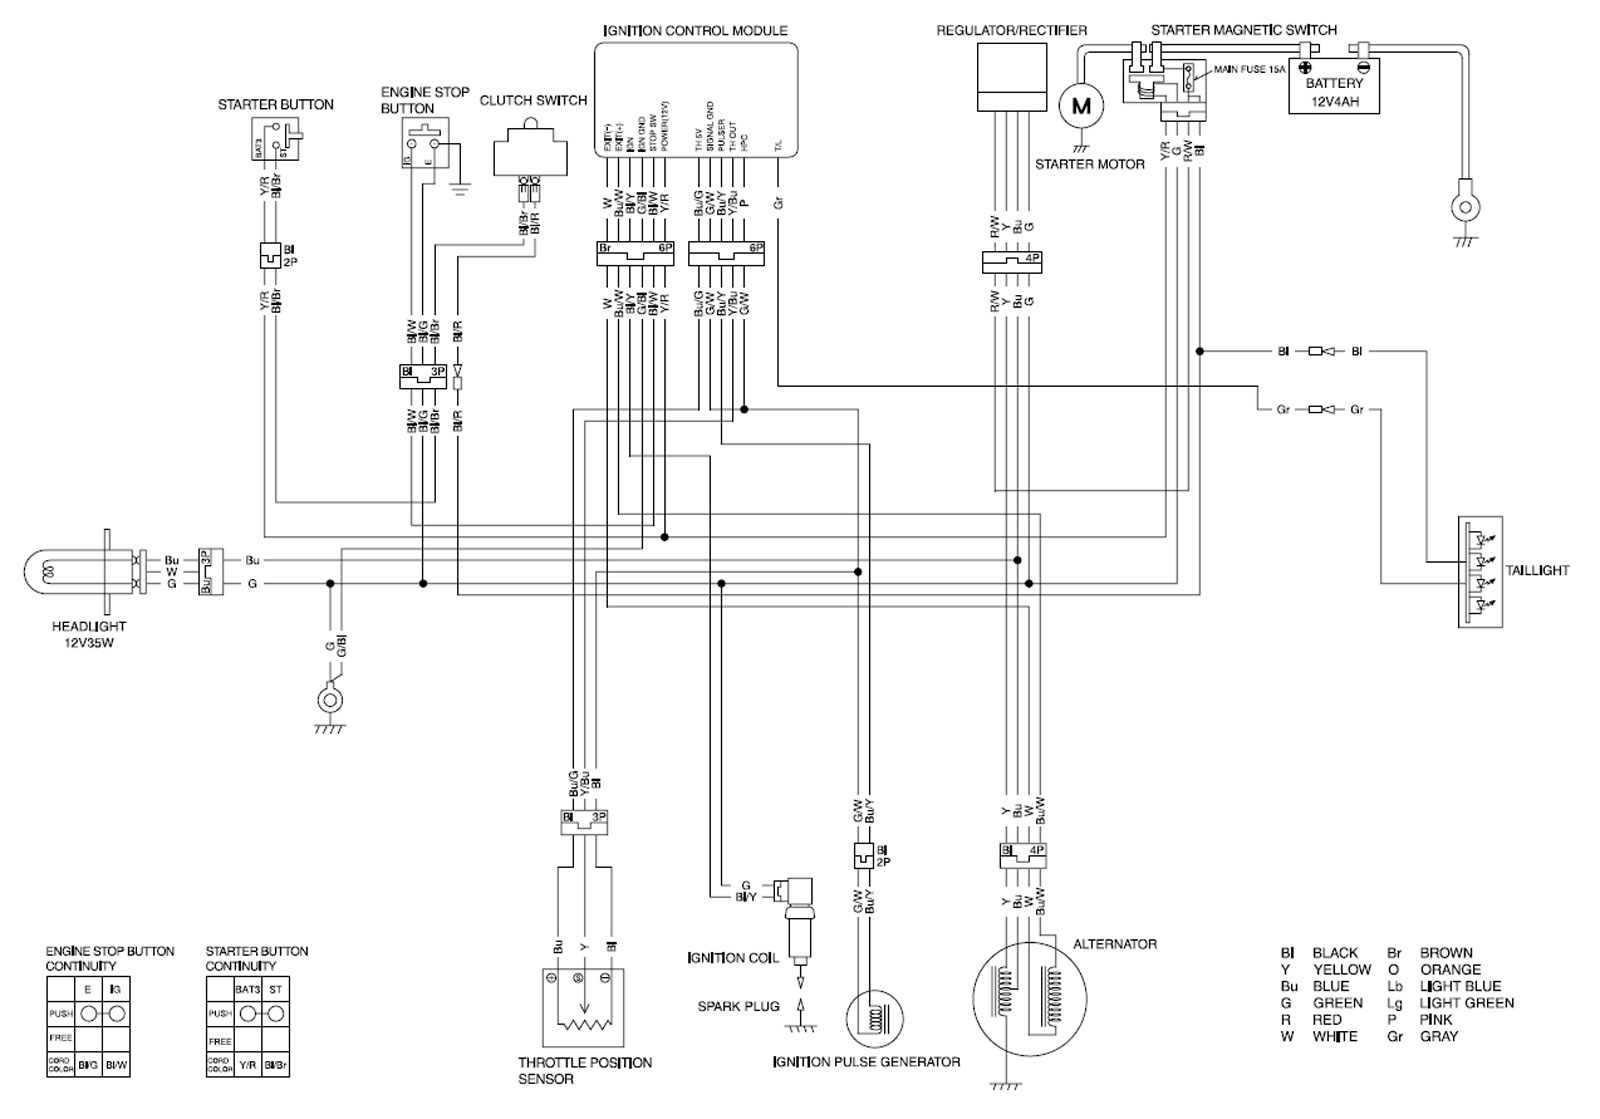 crf250x wiring diagram basic wiring diagram \u2022 free wiring diagrams 2004 honda pilot wiring diagram at fashall.co